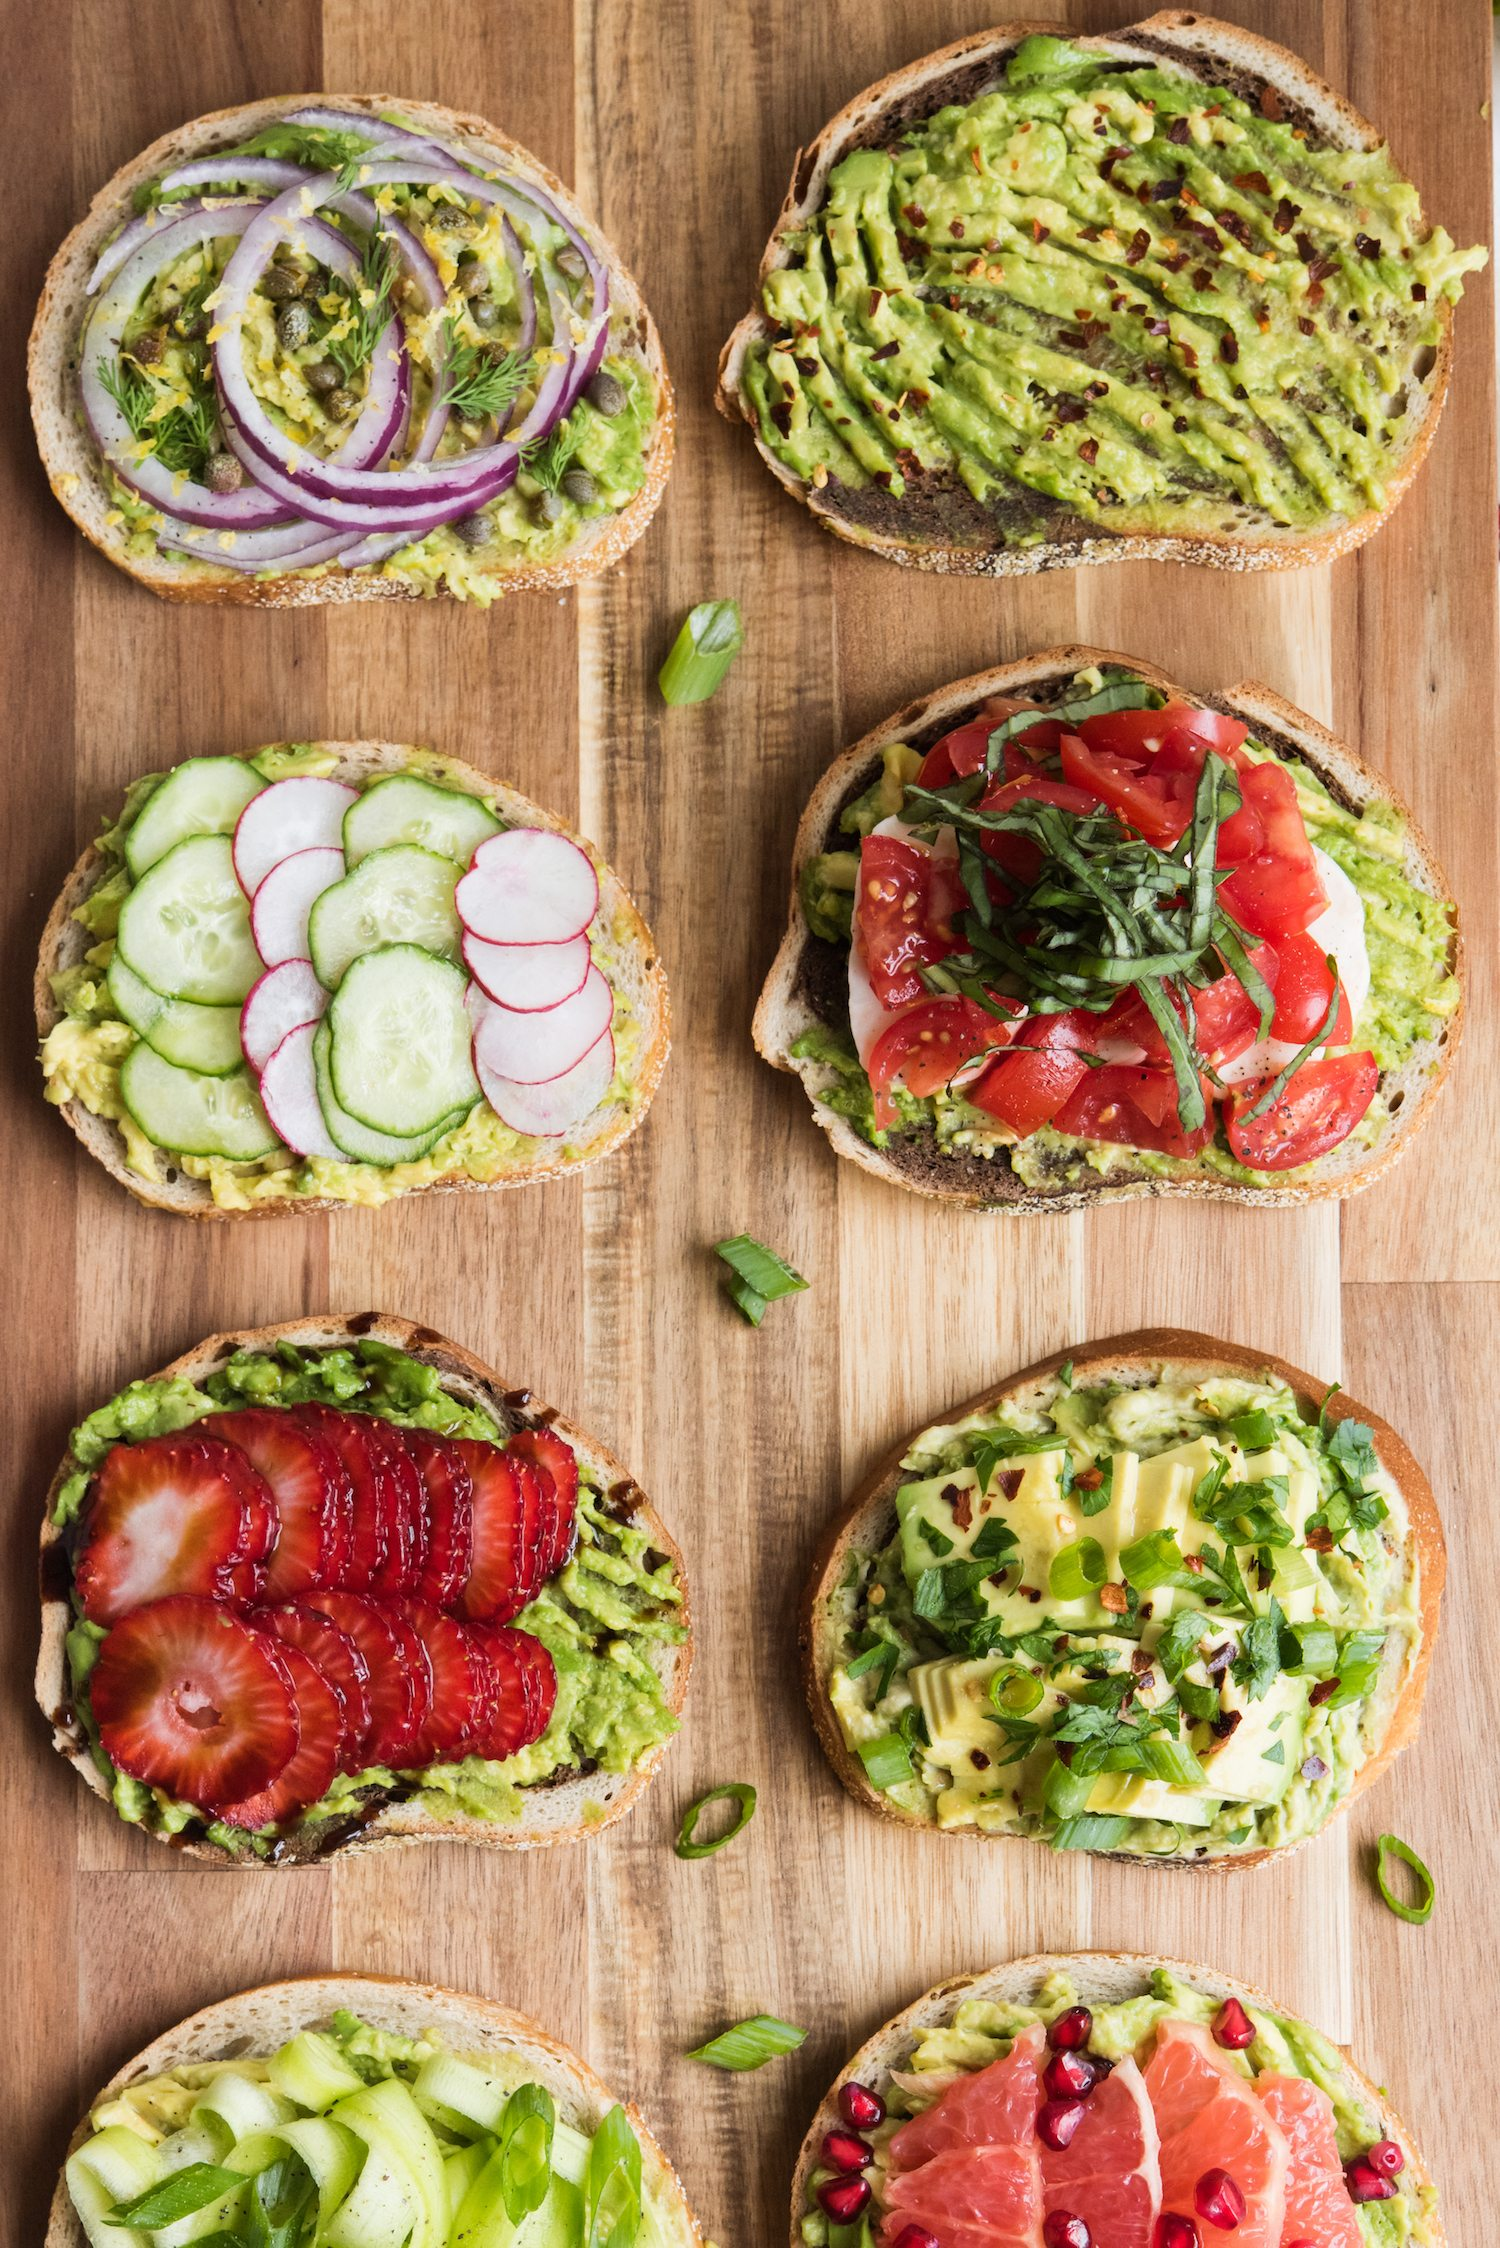 8 Awesome Ways to Make Avocado Toast | Unique avocado toast recipes, entertaining tips, party ideas and recipes from @cydconverse